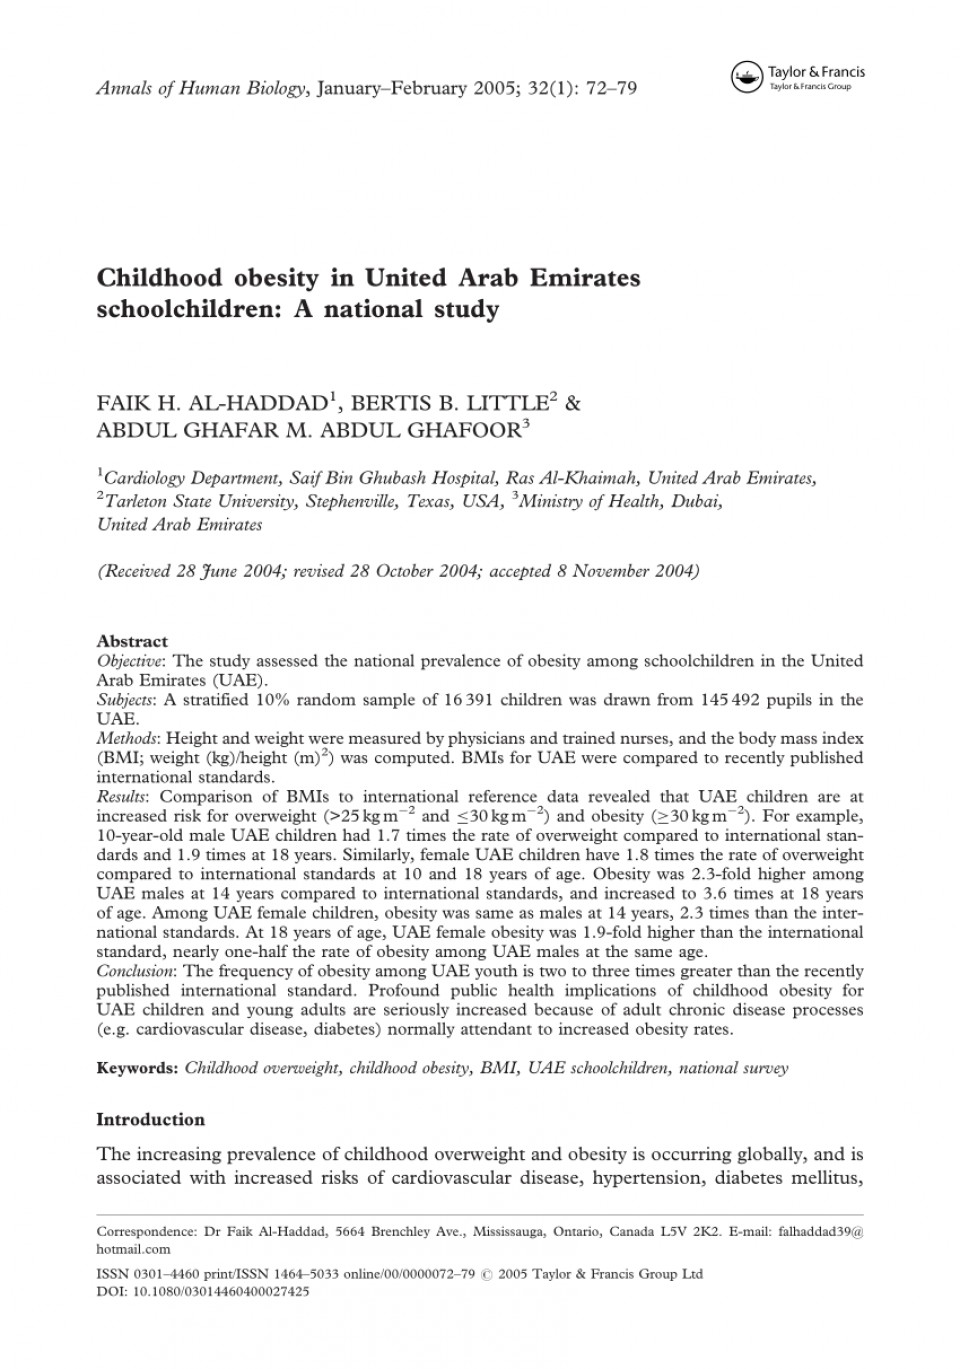 017 Largepreview Childhood Obesity Research Paper Frightening Introduction 960